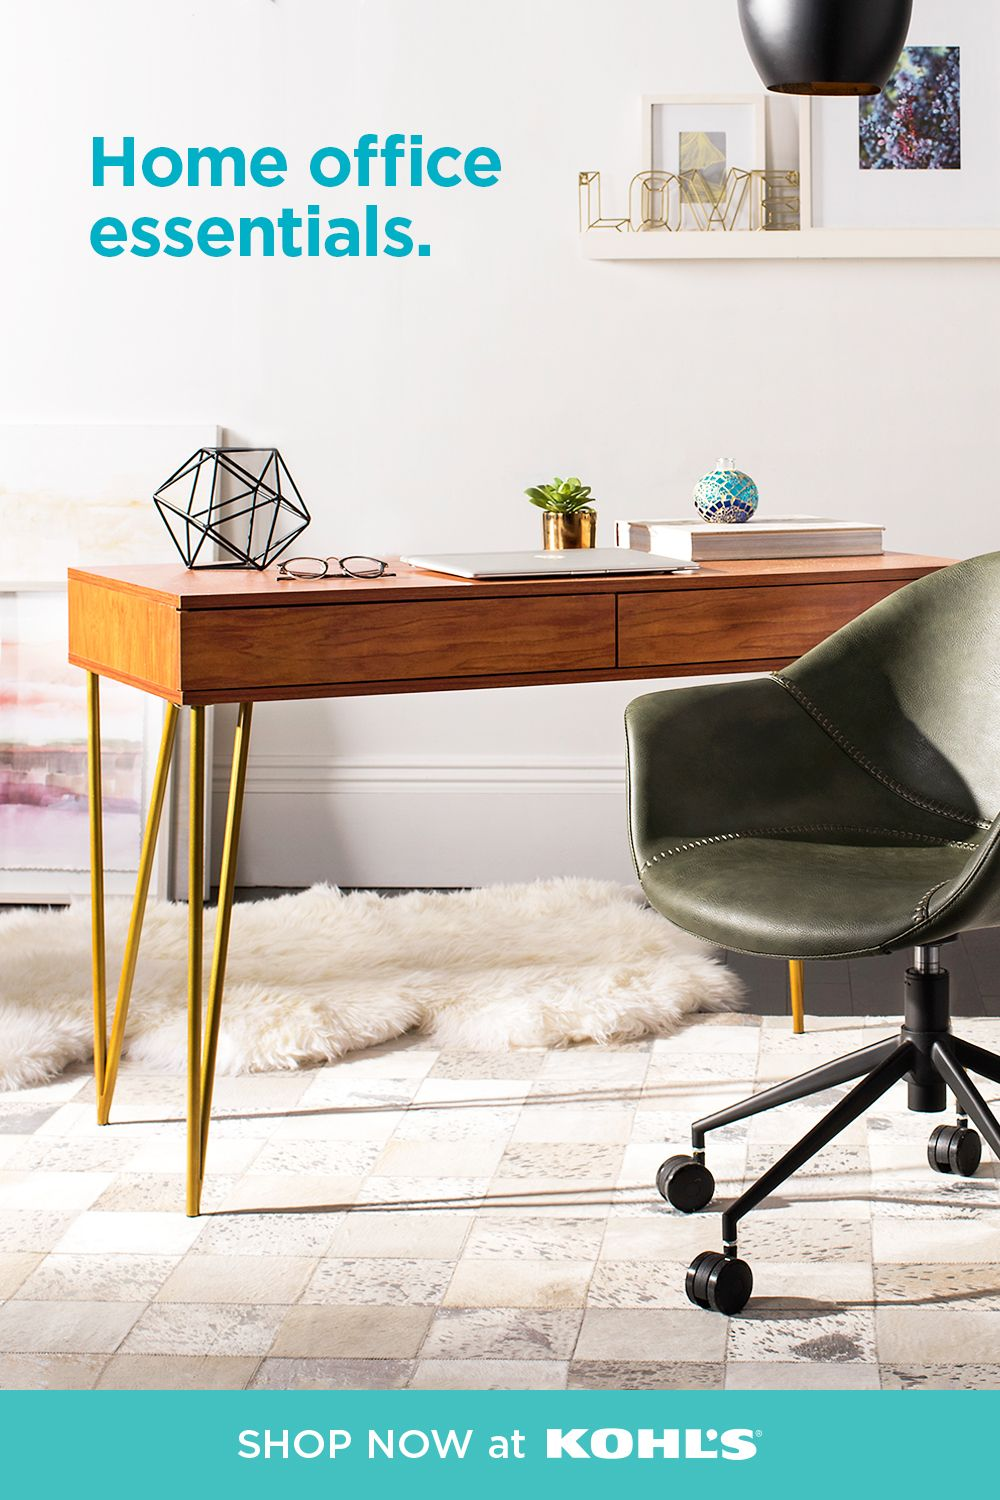 Create A Serene Office Space At Home With Stylish Essentials